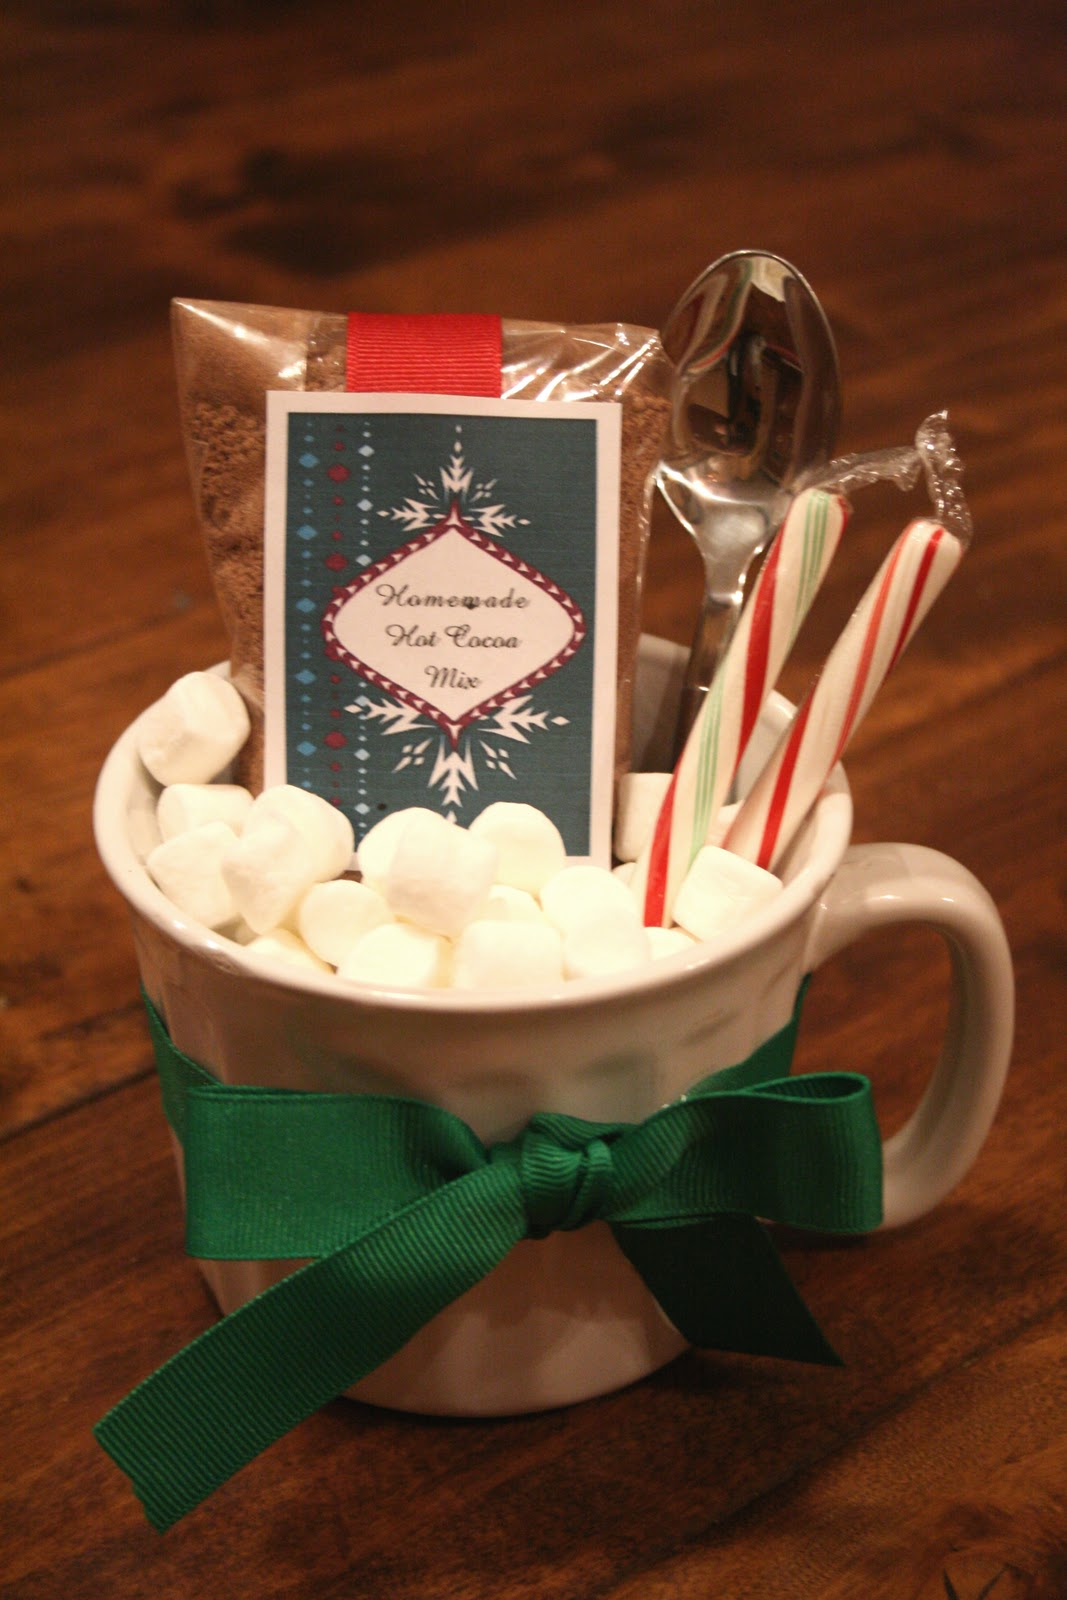 it was so fun to organize the boxes with a little hot chocolate theme plus the homemade hot cocoa mix is awesome you can make this gift for a family